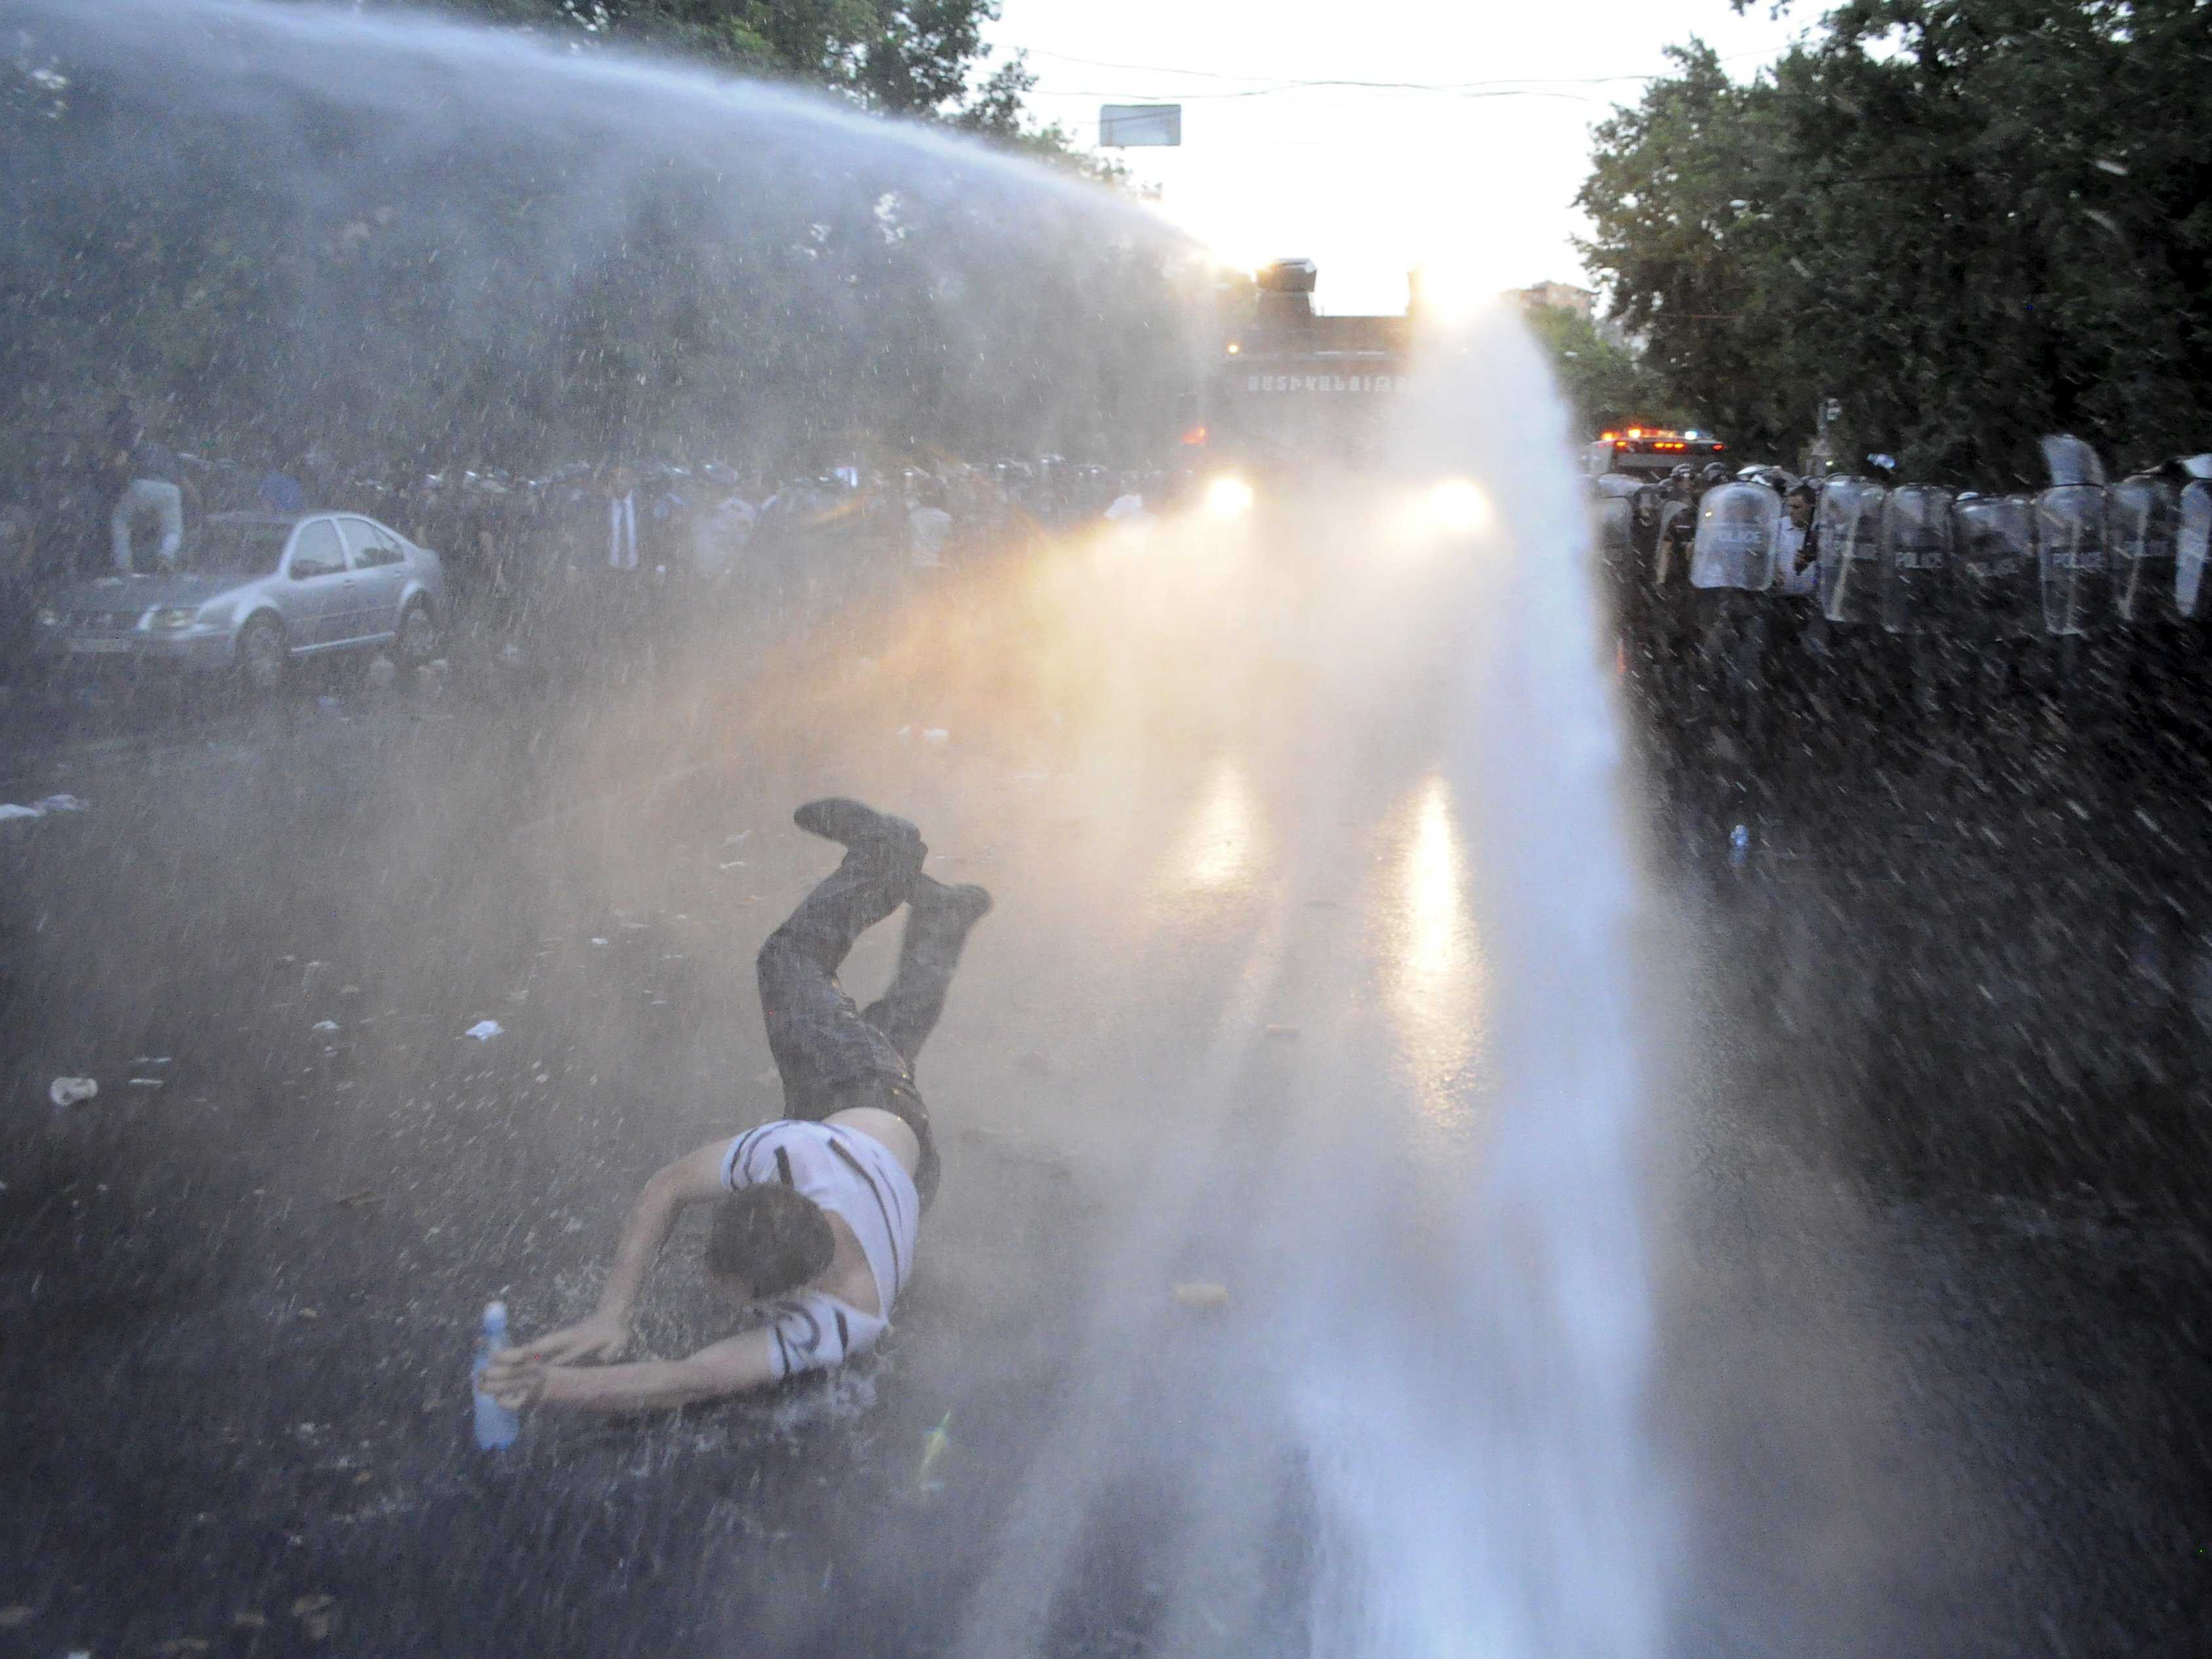 Armenians are protesting over price hikes — and Russia's not pleased